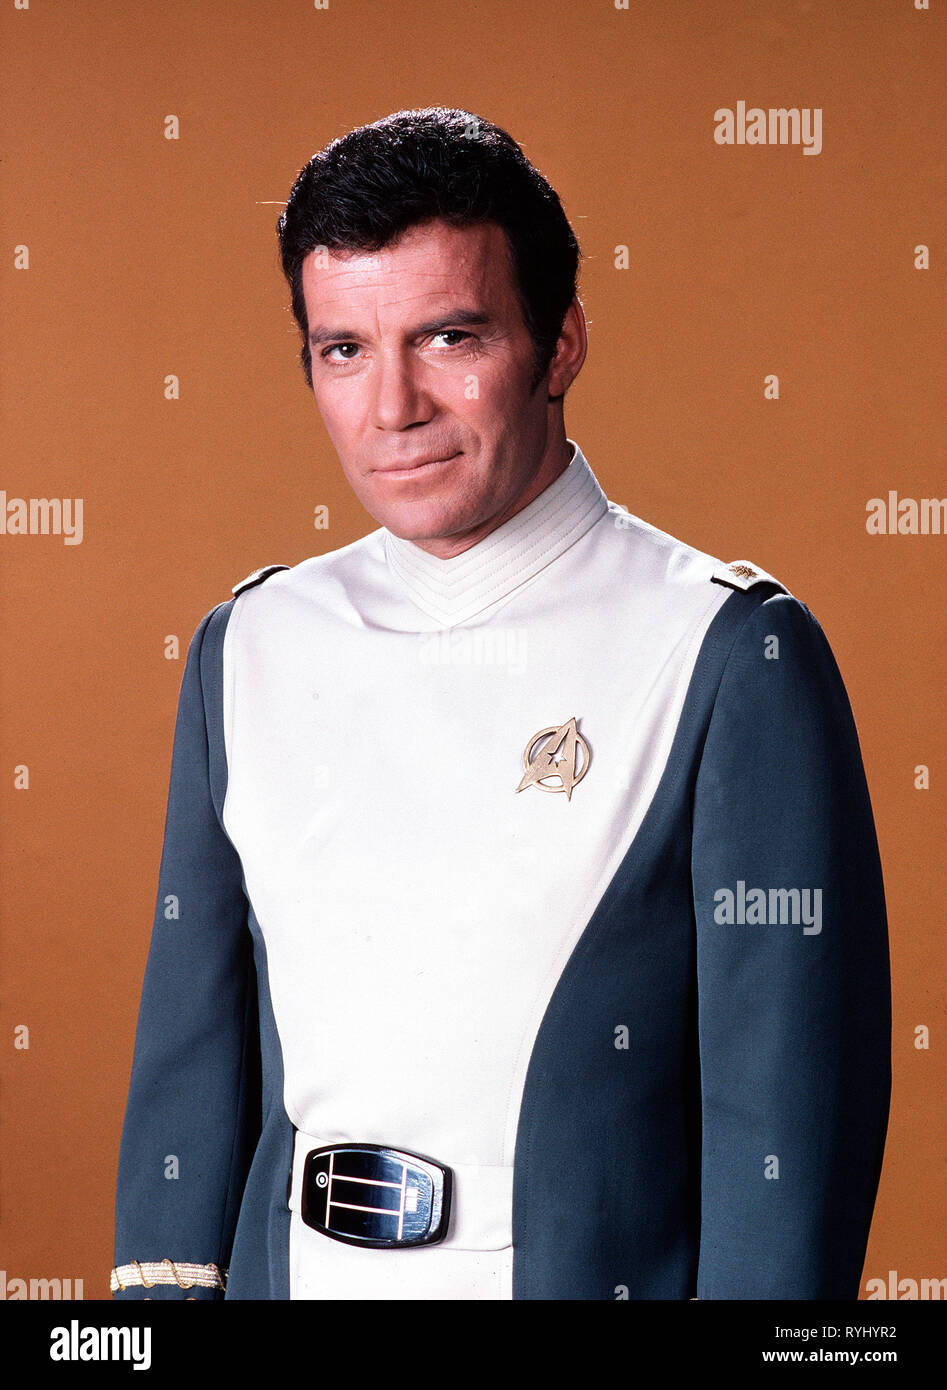 WILLIAM SHATNER, STAR TREK: THE MOTION PICTURE, 1979 Stock Photo